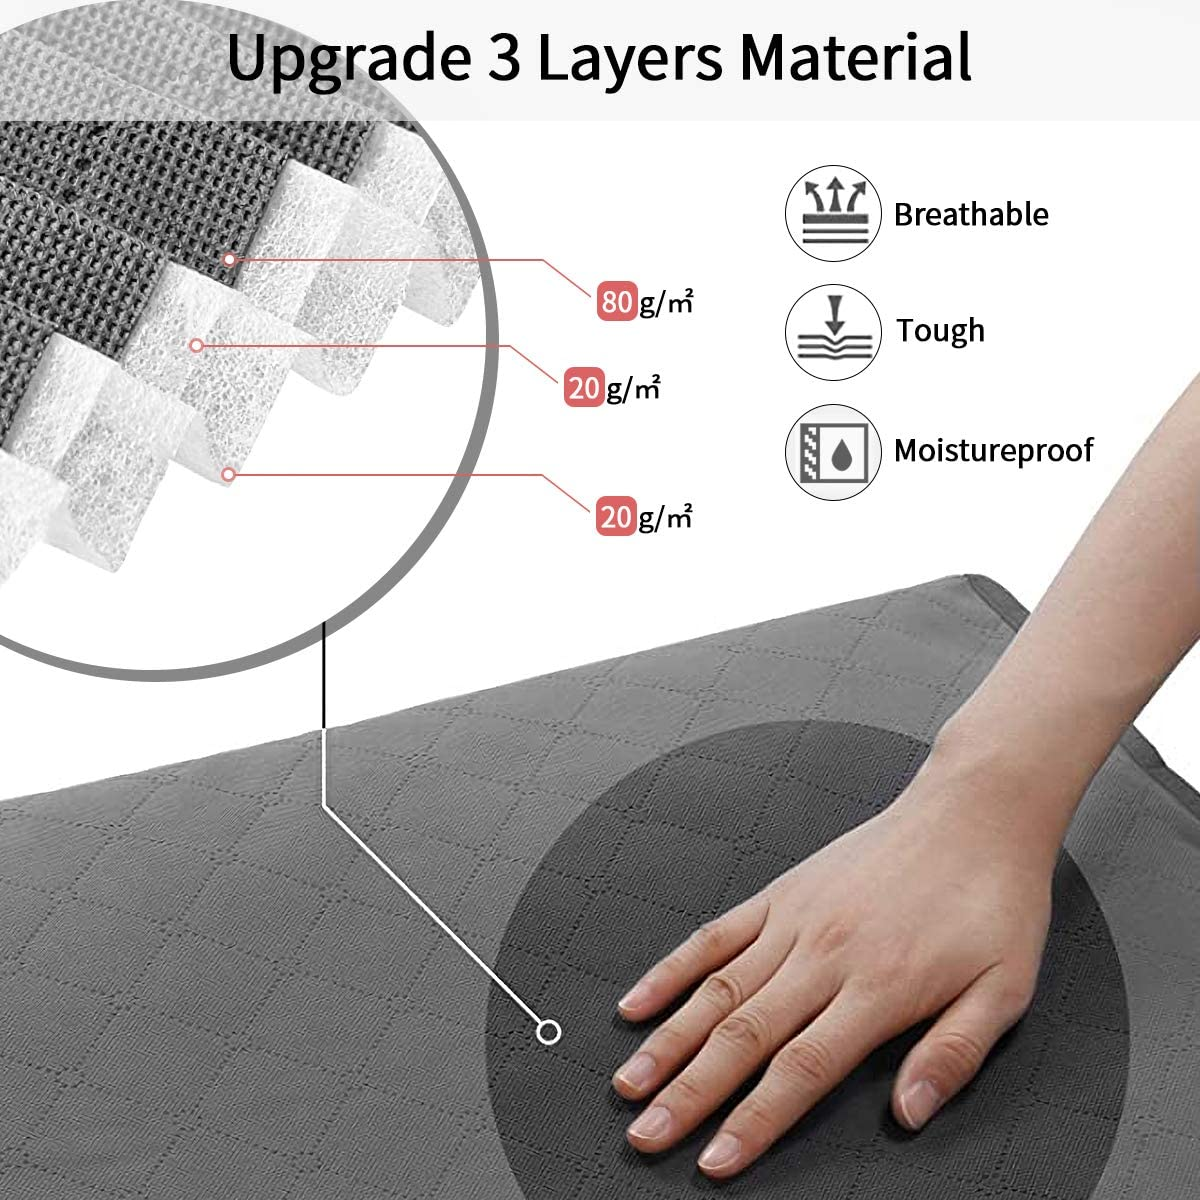 Stainless Steel Zipper,3 Layer Fabric for Comforters Clothing Coffee Bedding king do way Closet Organizer Clothes Storage Bags Large Capacity Clothing Storage with Reinforced Handle Blankets